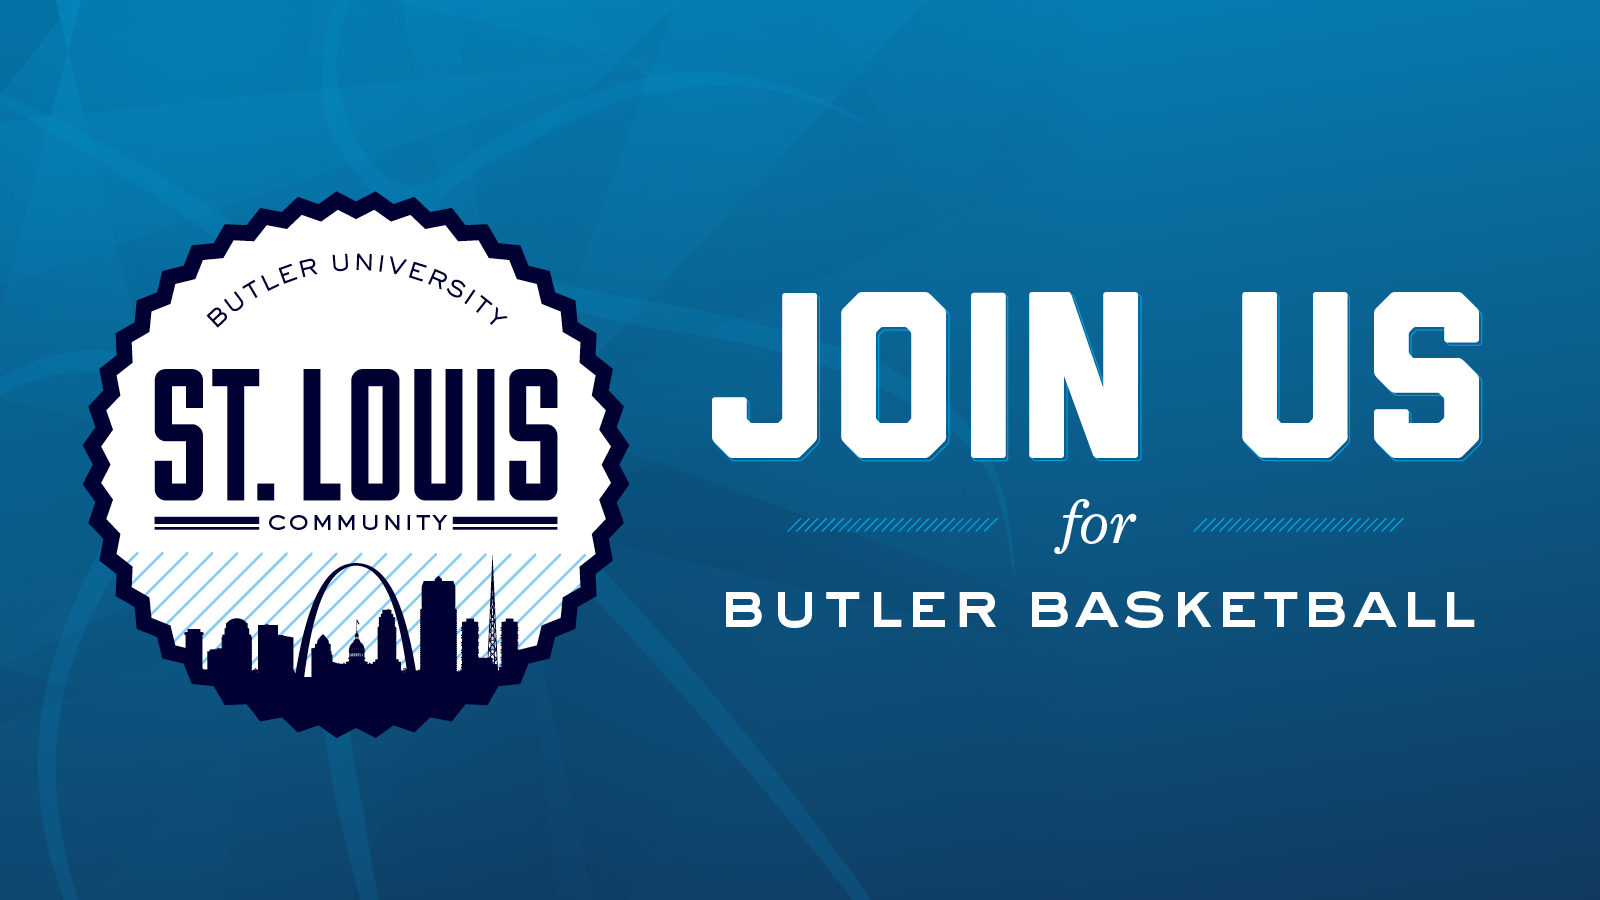 St. Louis Alumni Fan Gathering: Butler at Marquette